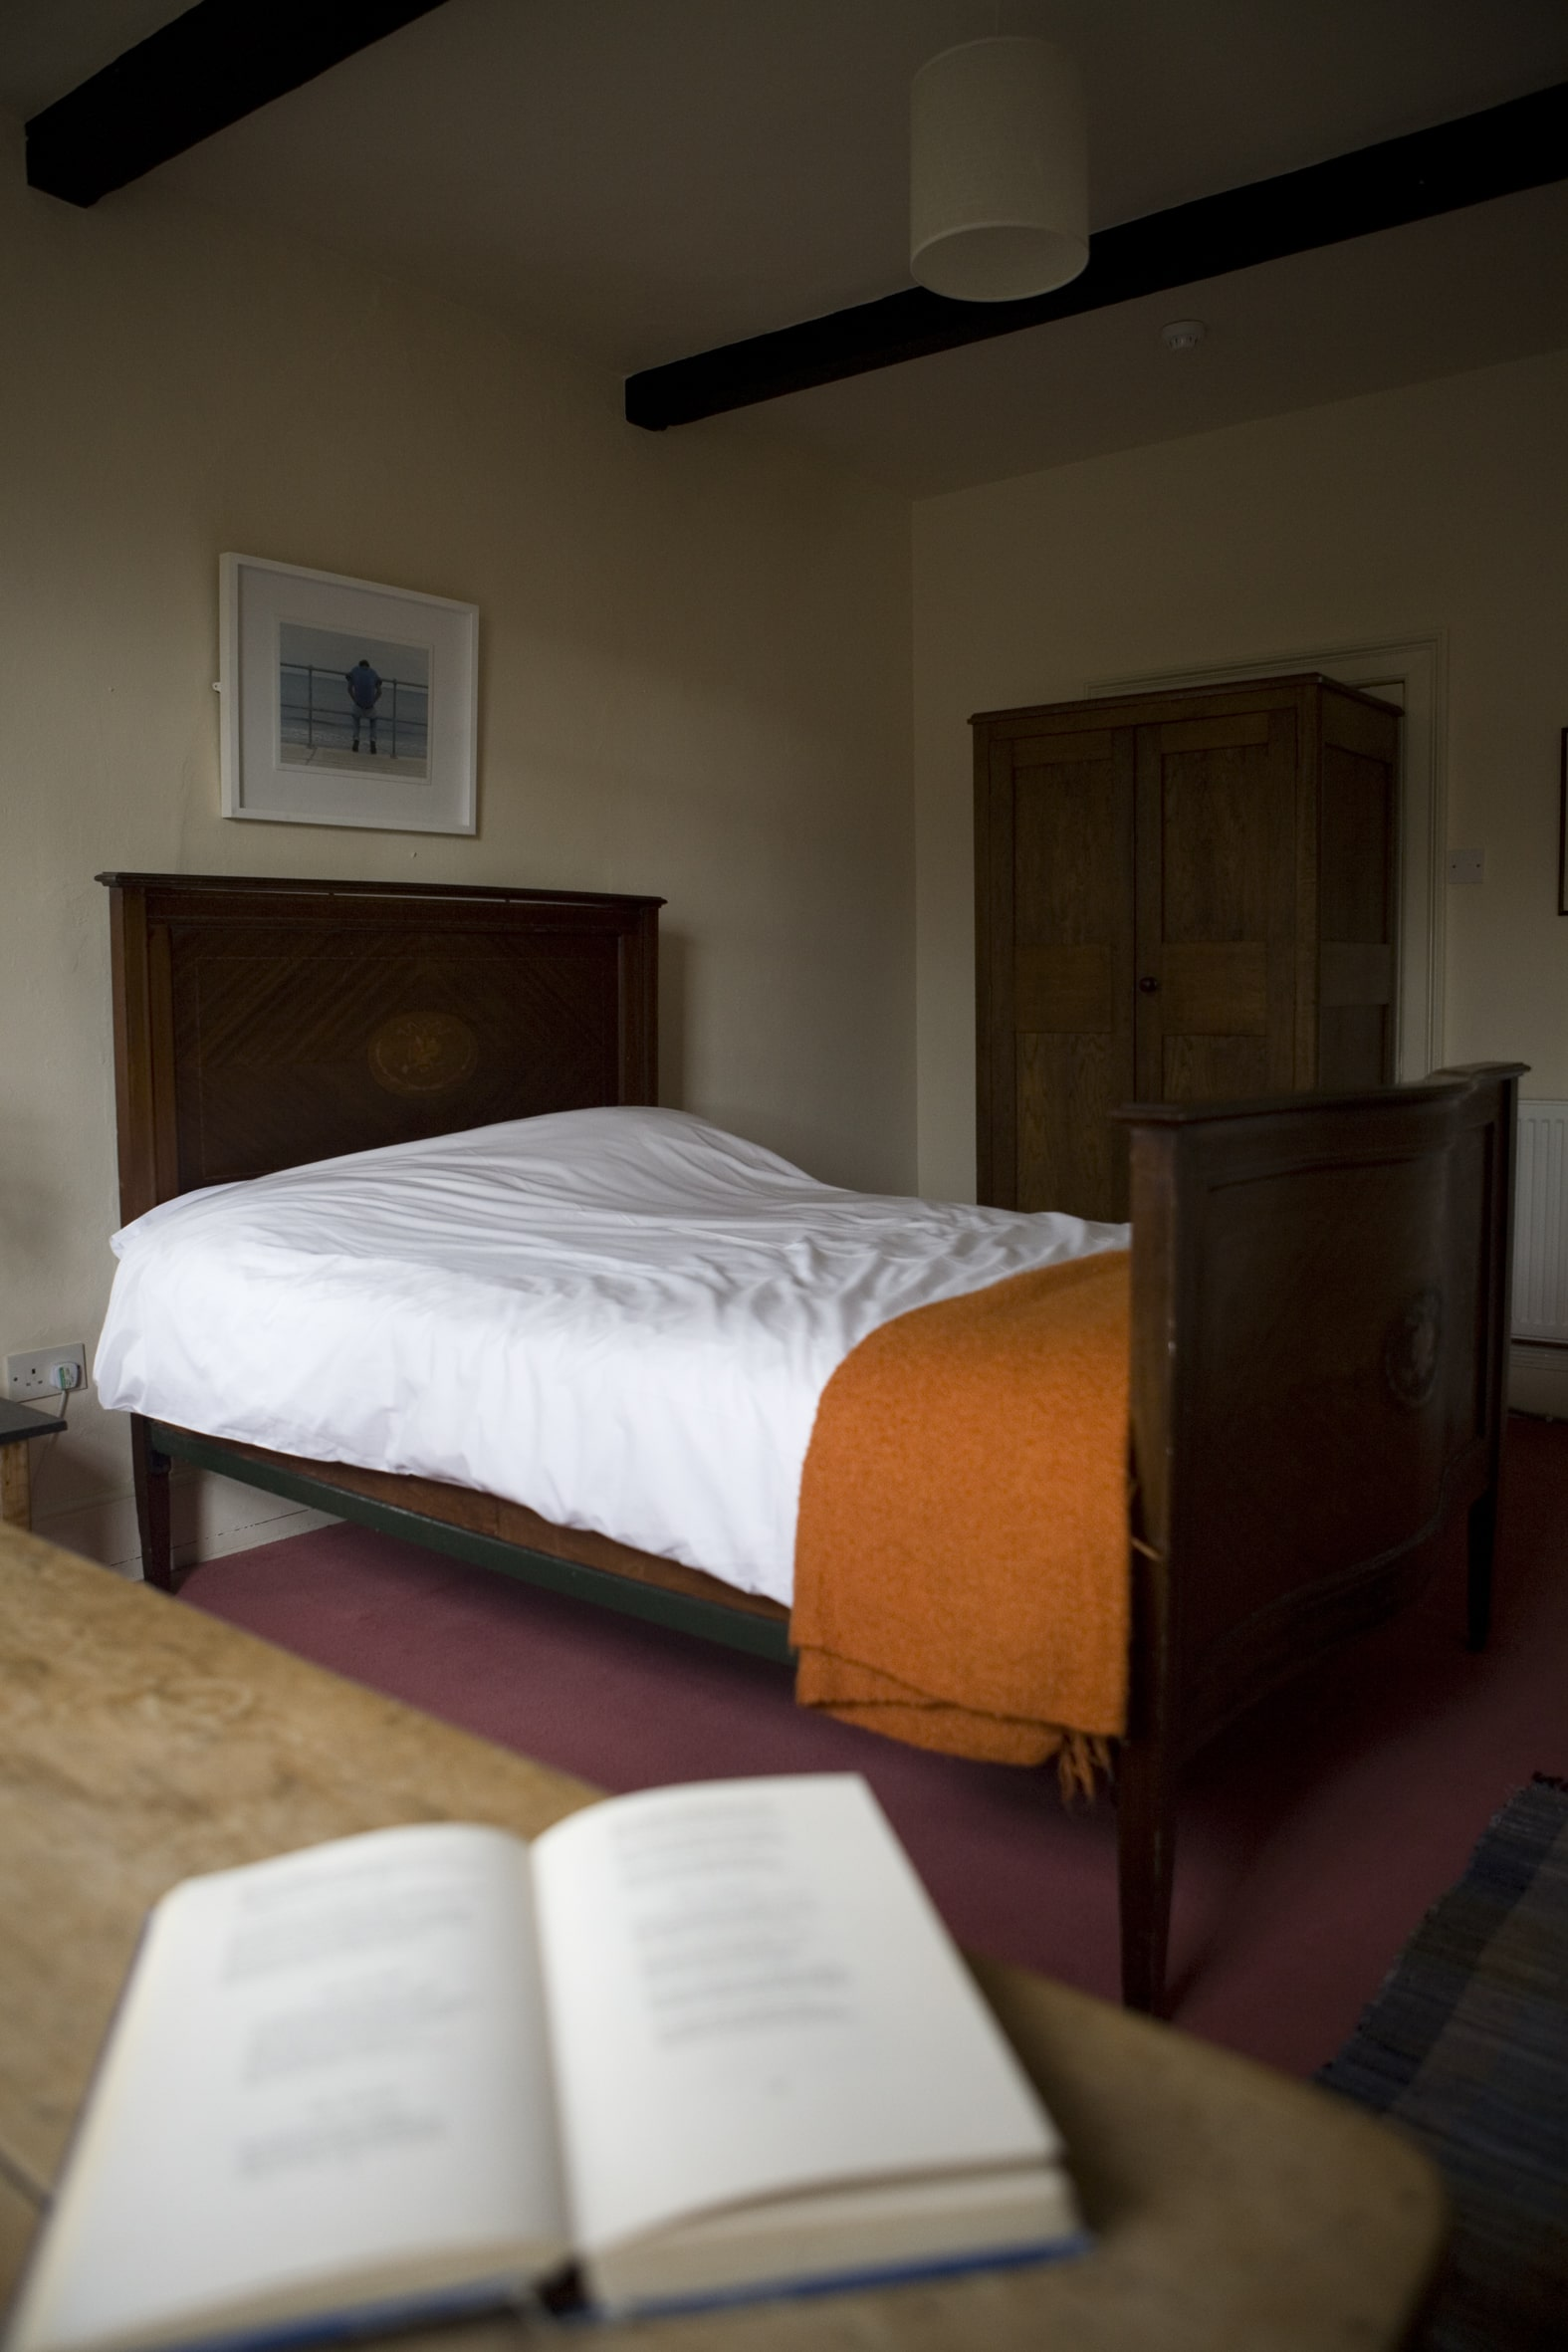 Bedroom and book on table at Lumb Bank